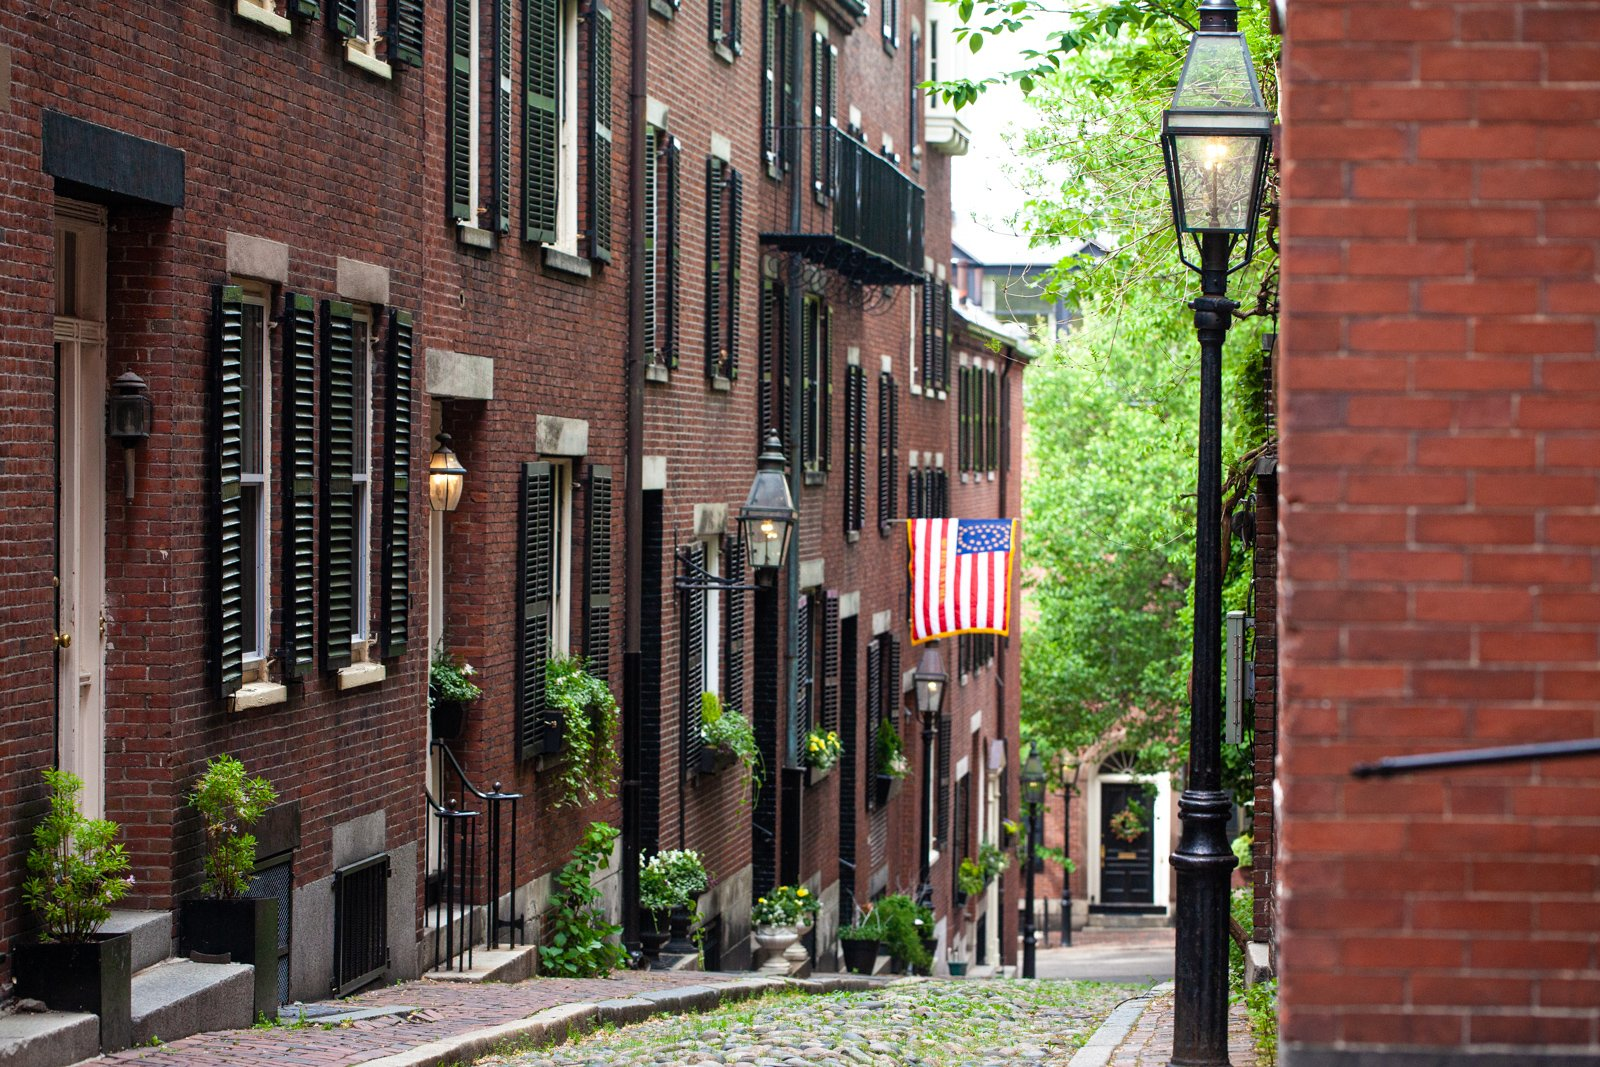 Acorn Street in Boston, MA